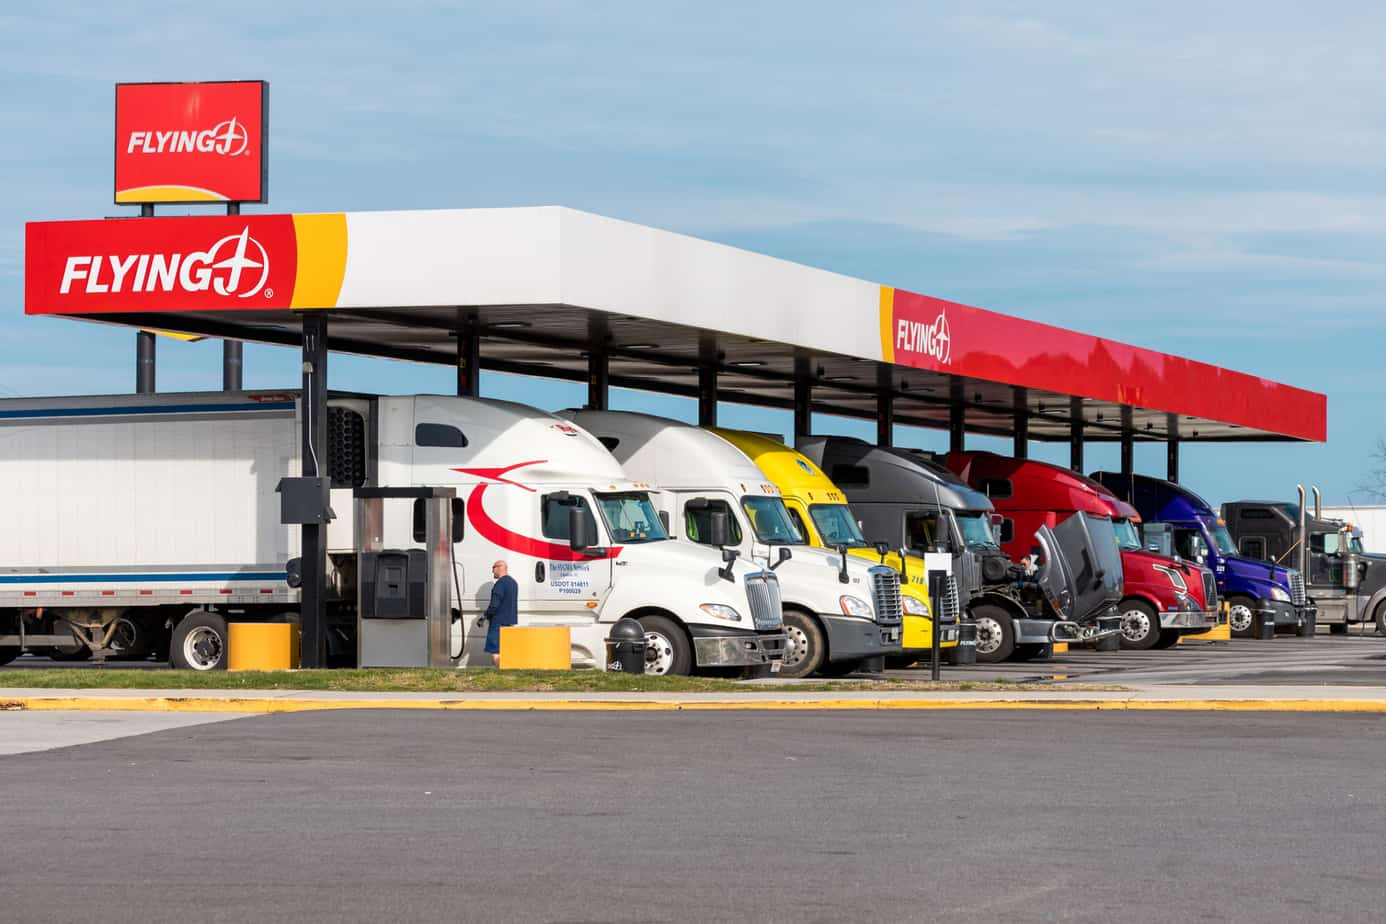 pilot flying j truck stop fuel island full of tractor trailers 184514346